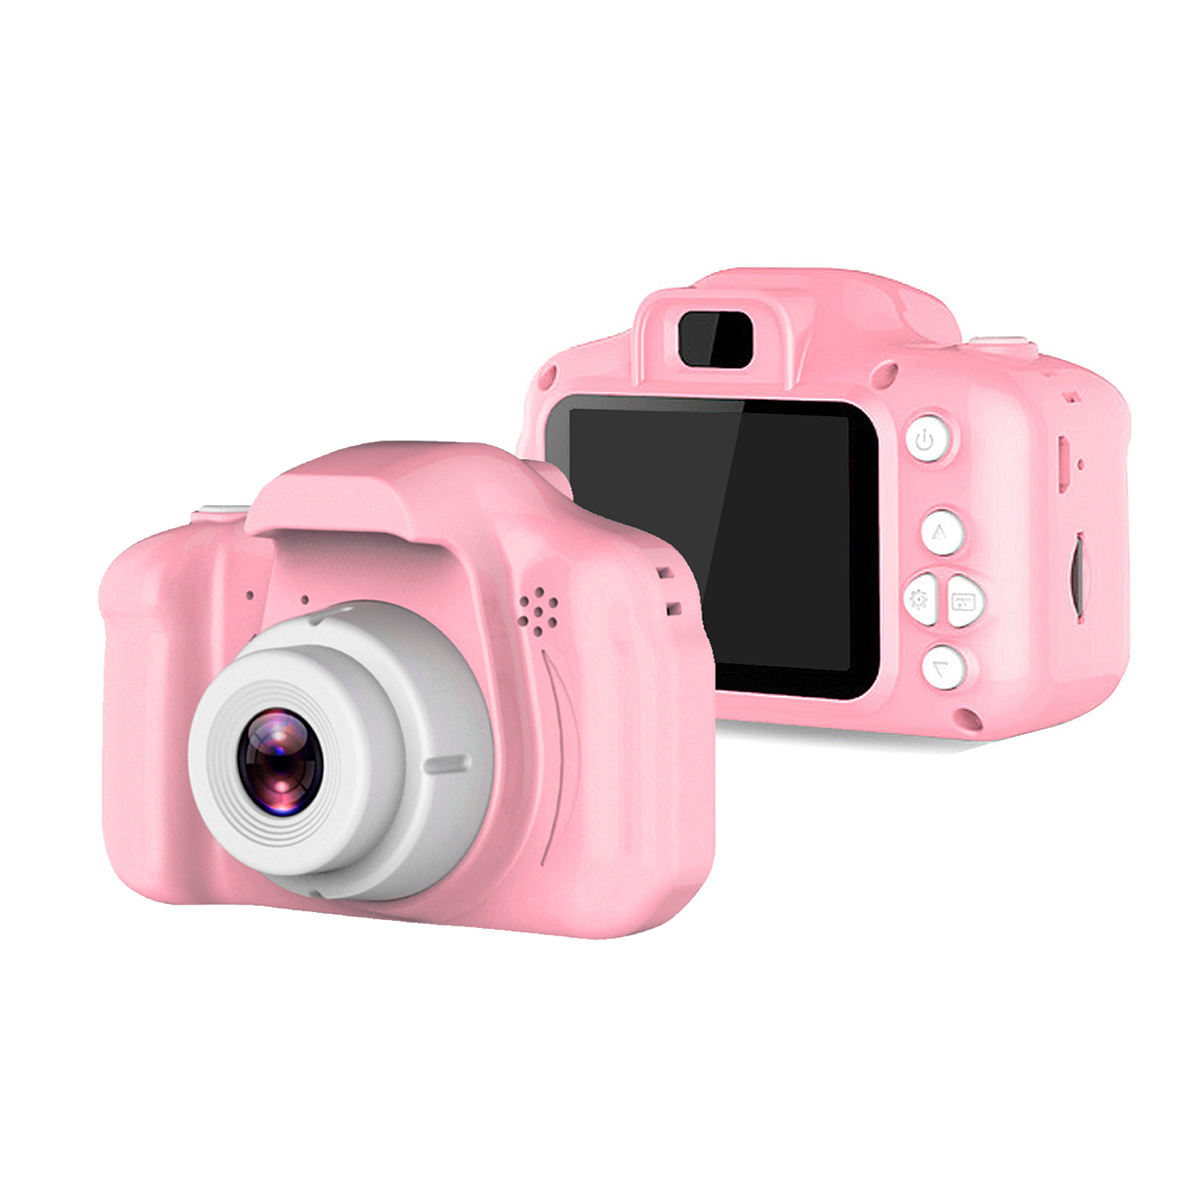 Children's Camera 720P HD Screen Camera Video Toy Kids Cartoon Cute Camera Outdoor Photography kids For Birthday Gift